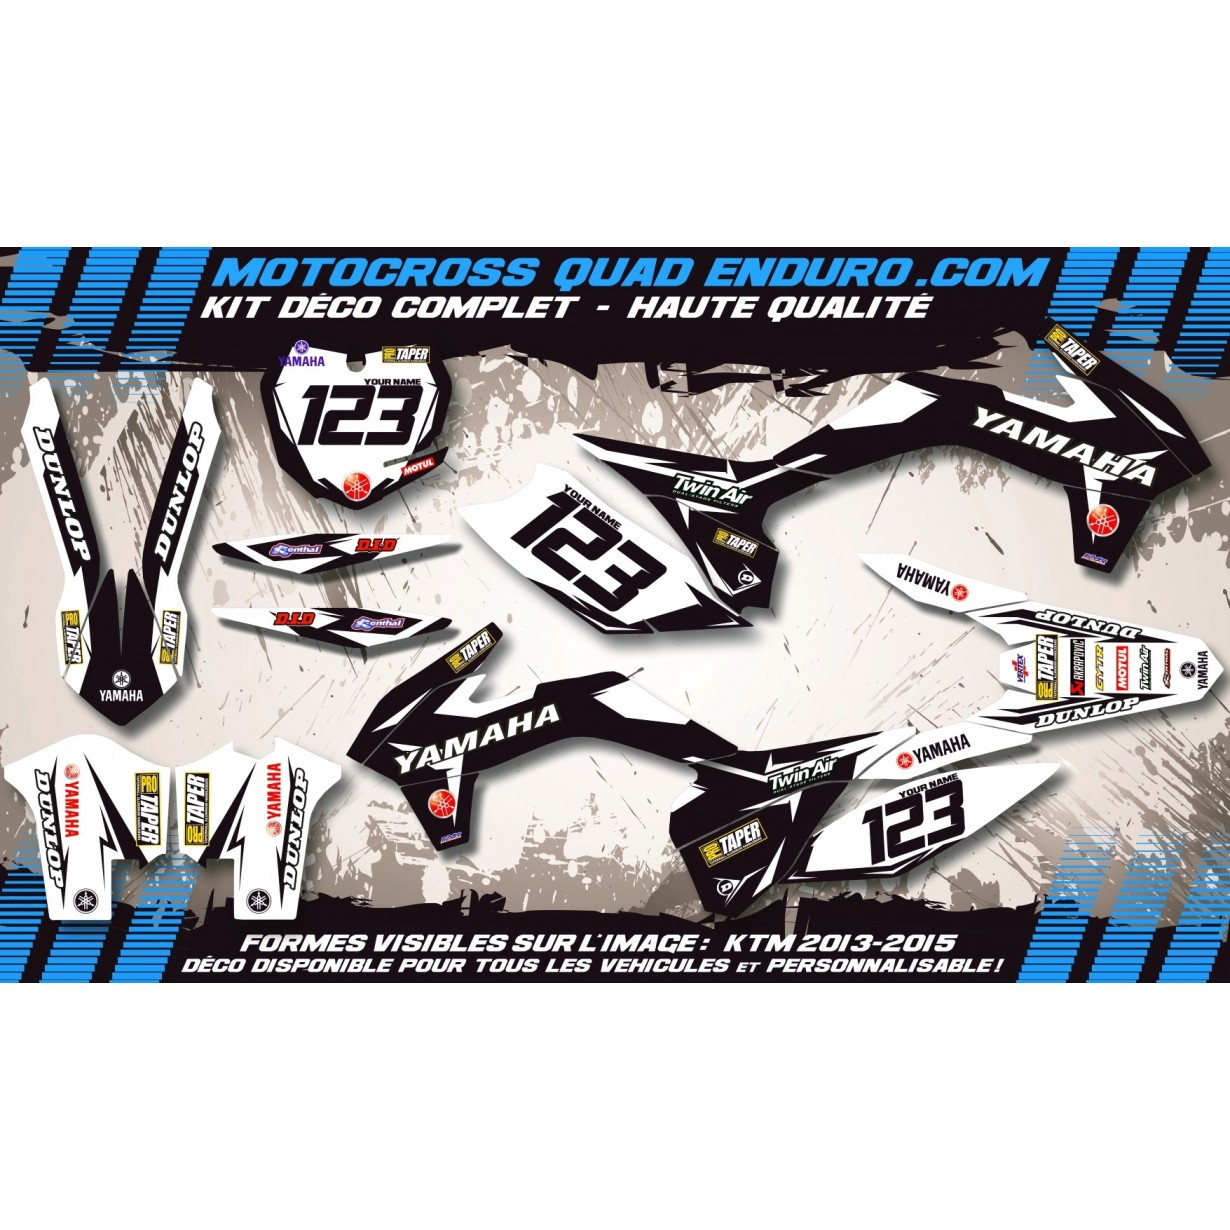 KIT DÉCO Perso 700 RAPTOR 13-16 Quad Factory Black Edition MA10EB